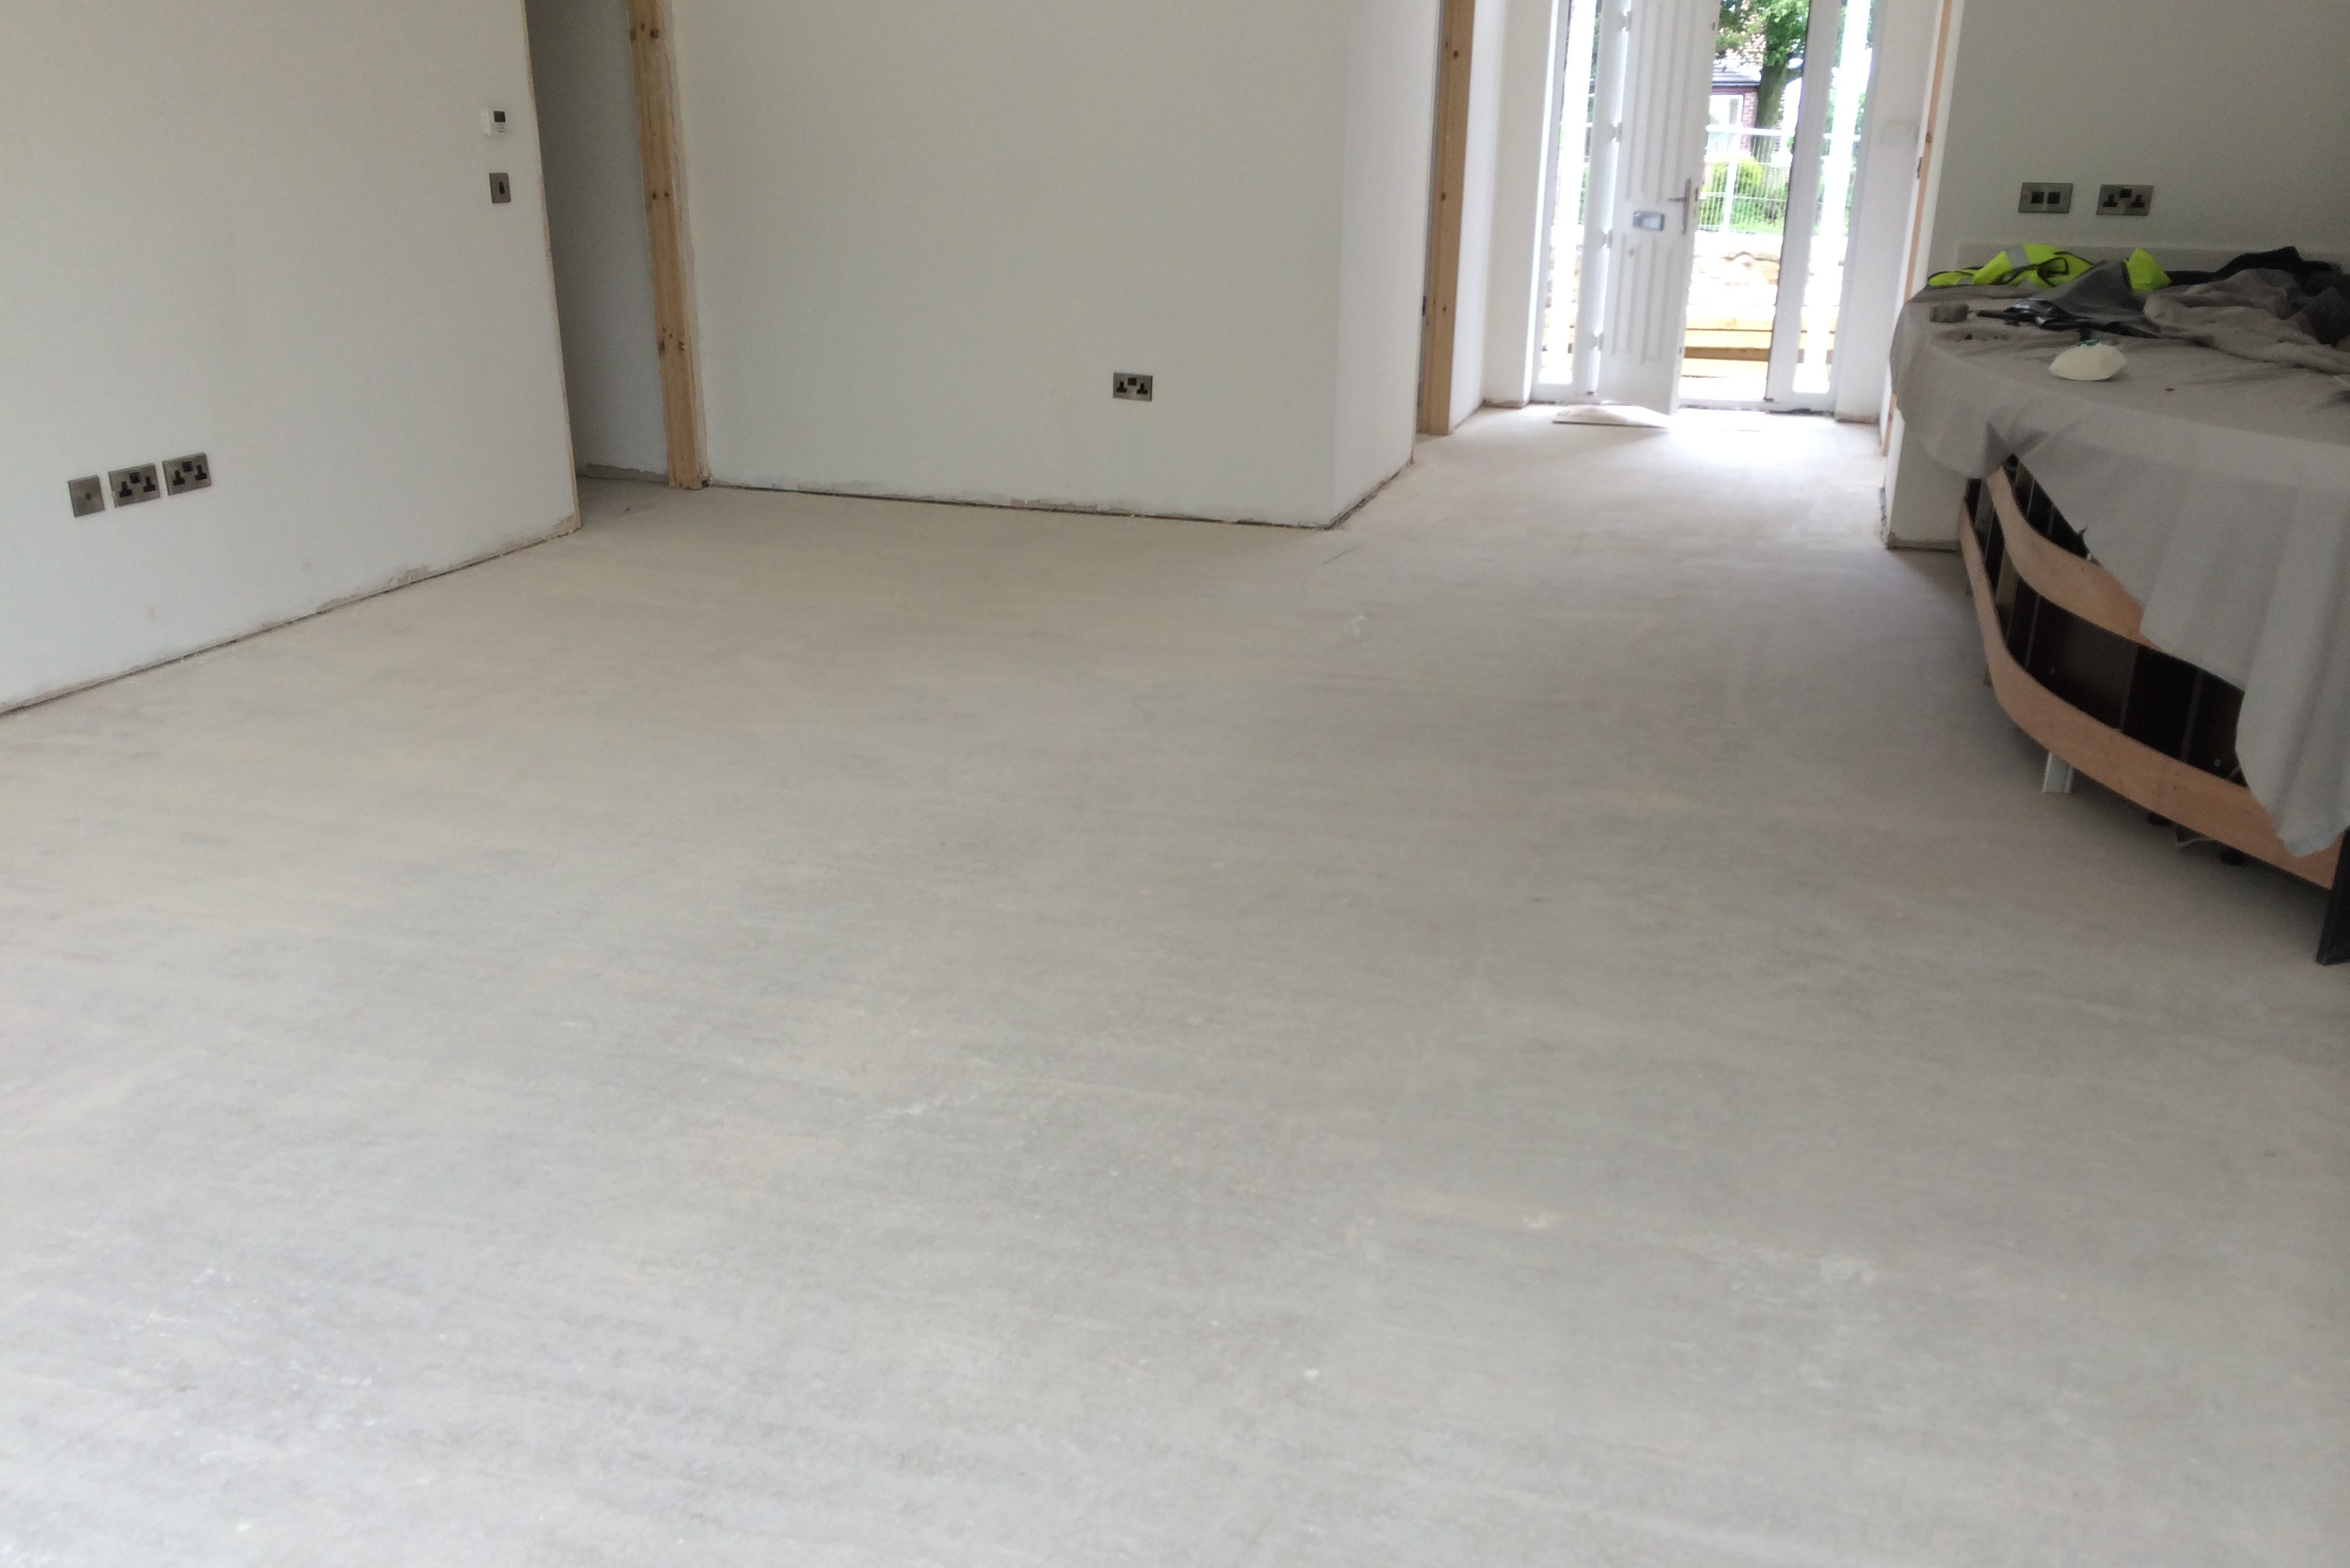 A room after screeding, showing a smooth screeded floor.